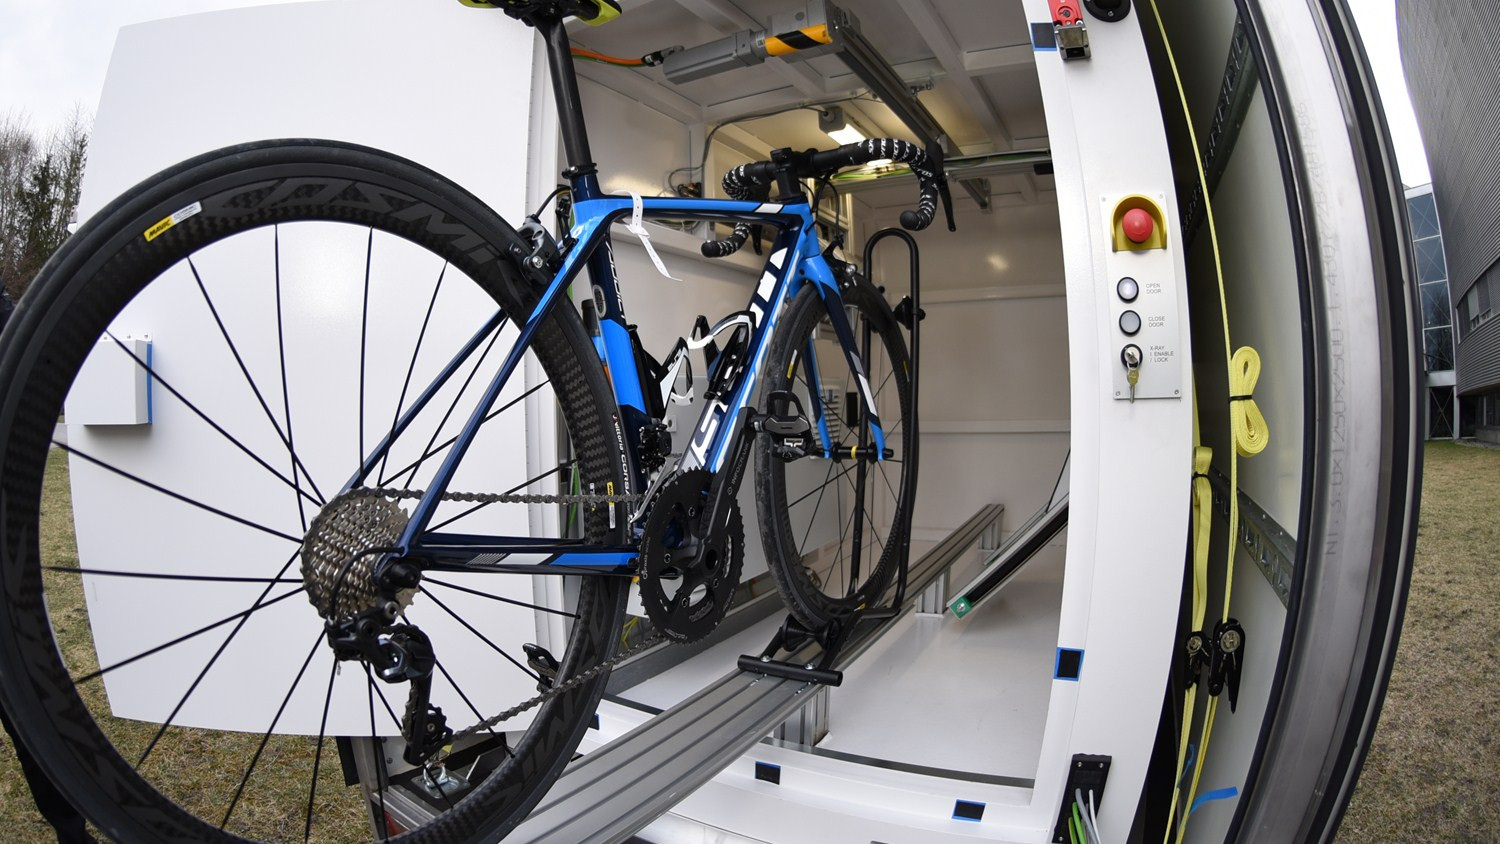 Mobile x-ray unit unveiled by UCI in bid to combat threat of technological fraud